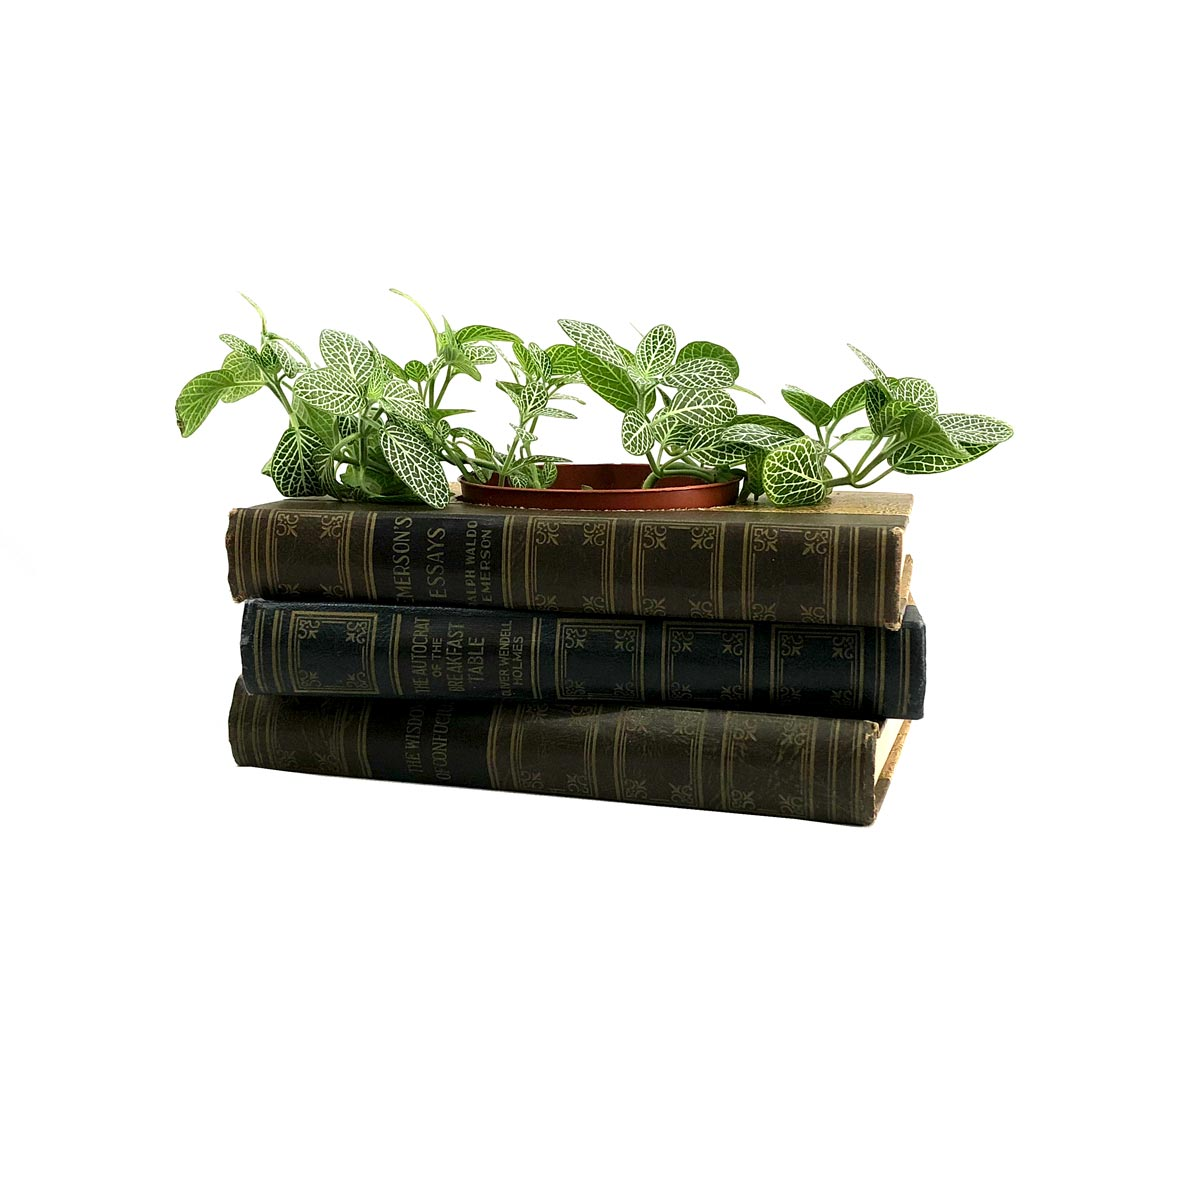 bookworm-room-decor